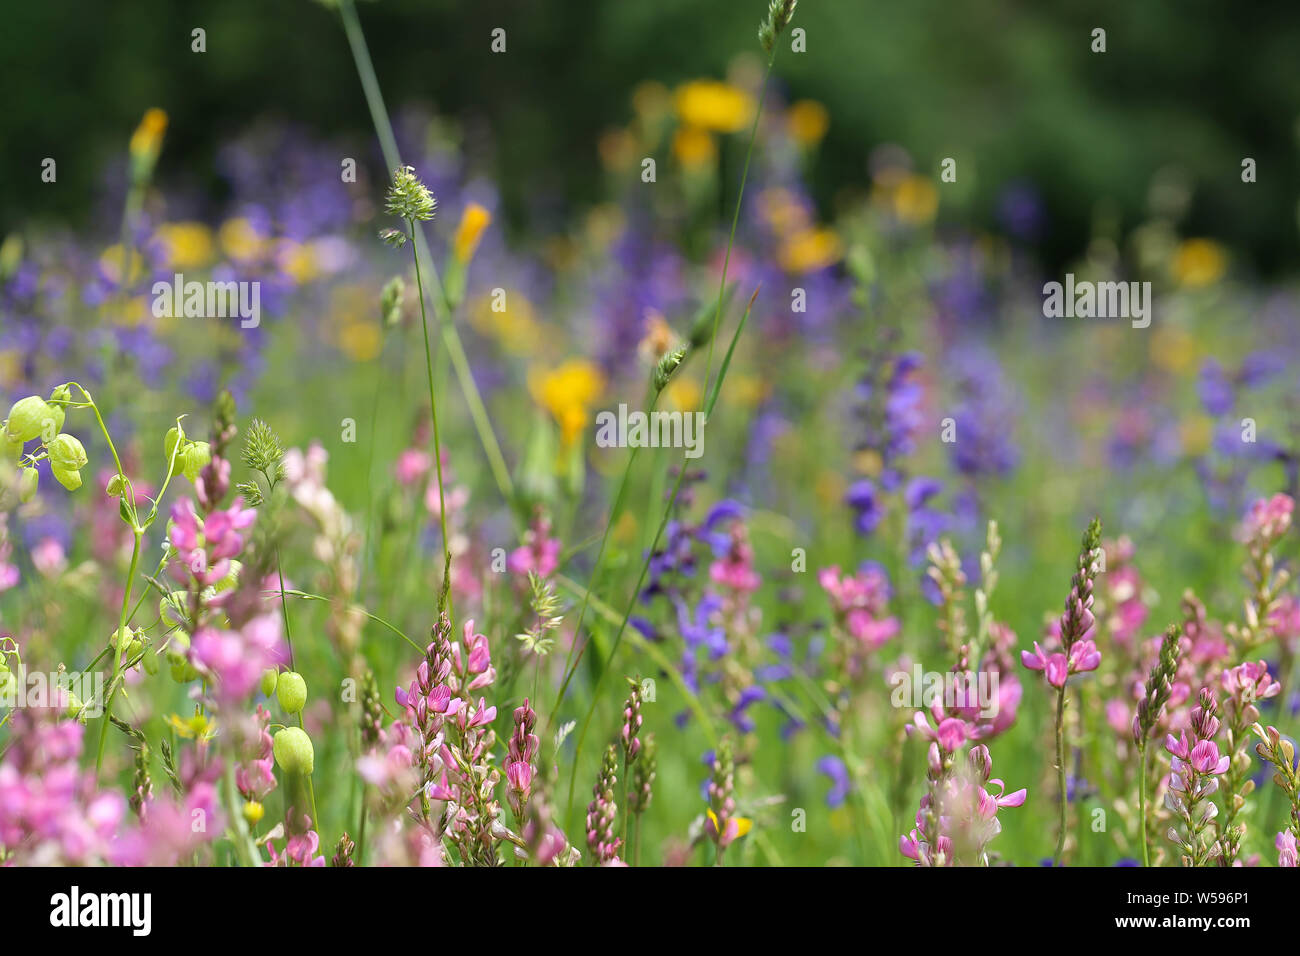 Makro Blumenwiese Hintergrund Stock Photo